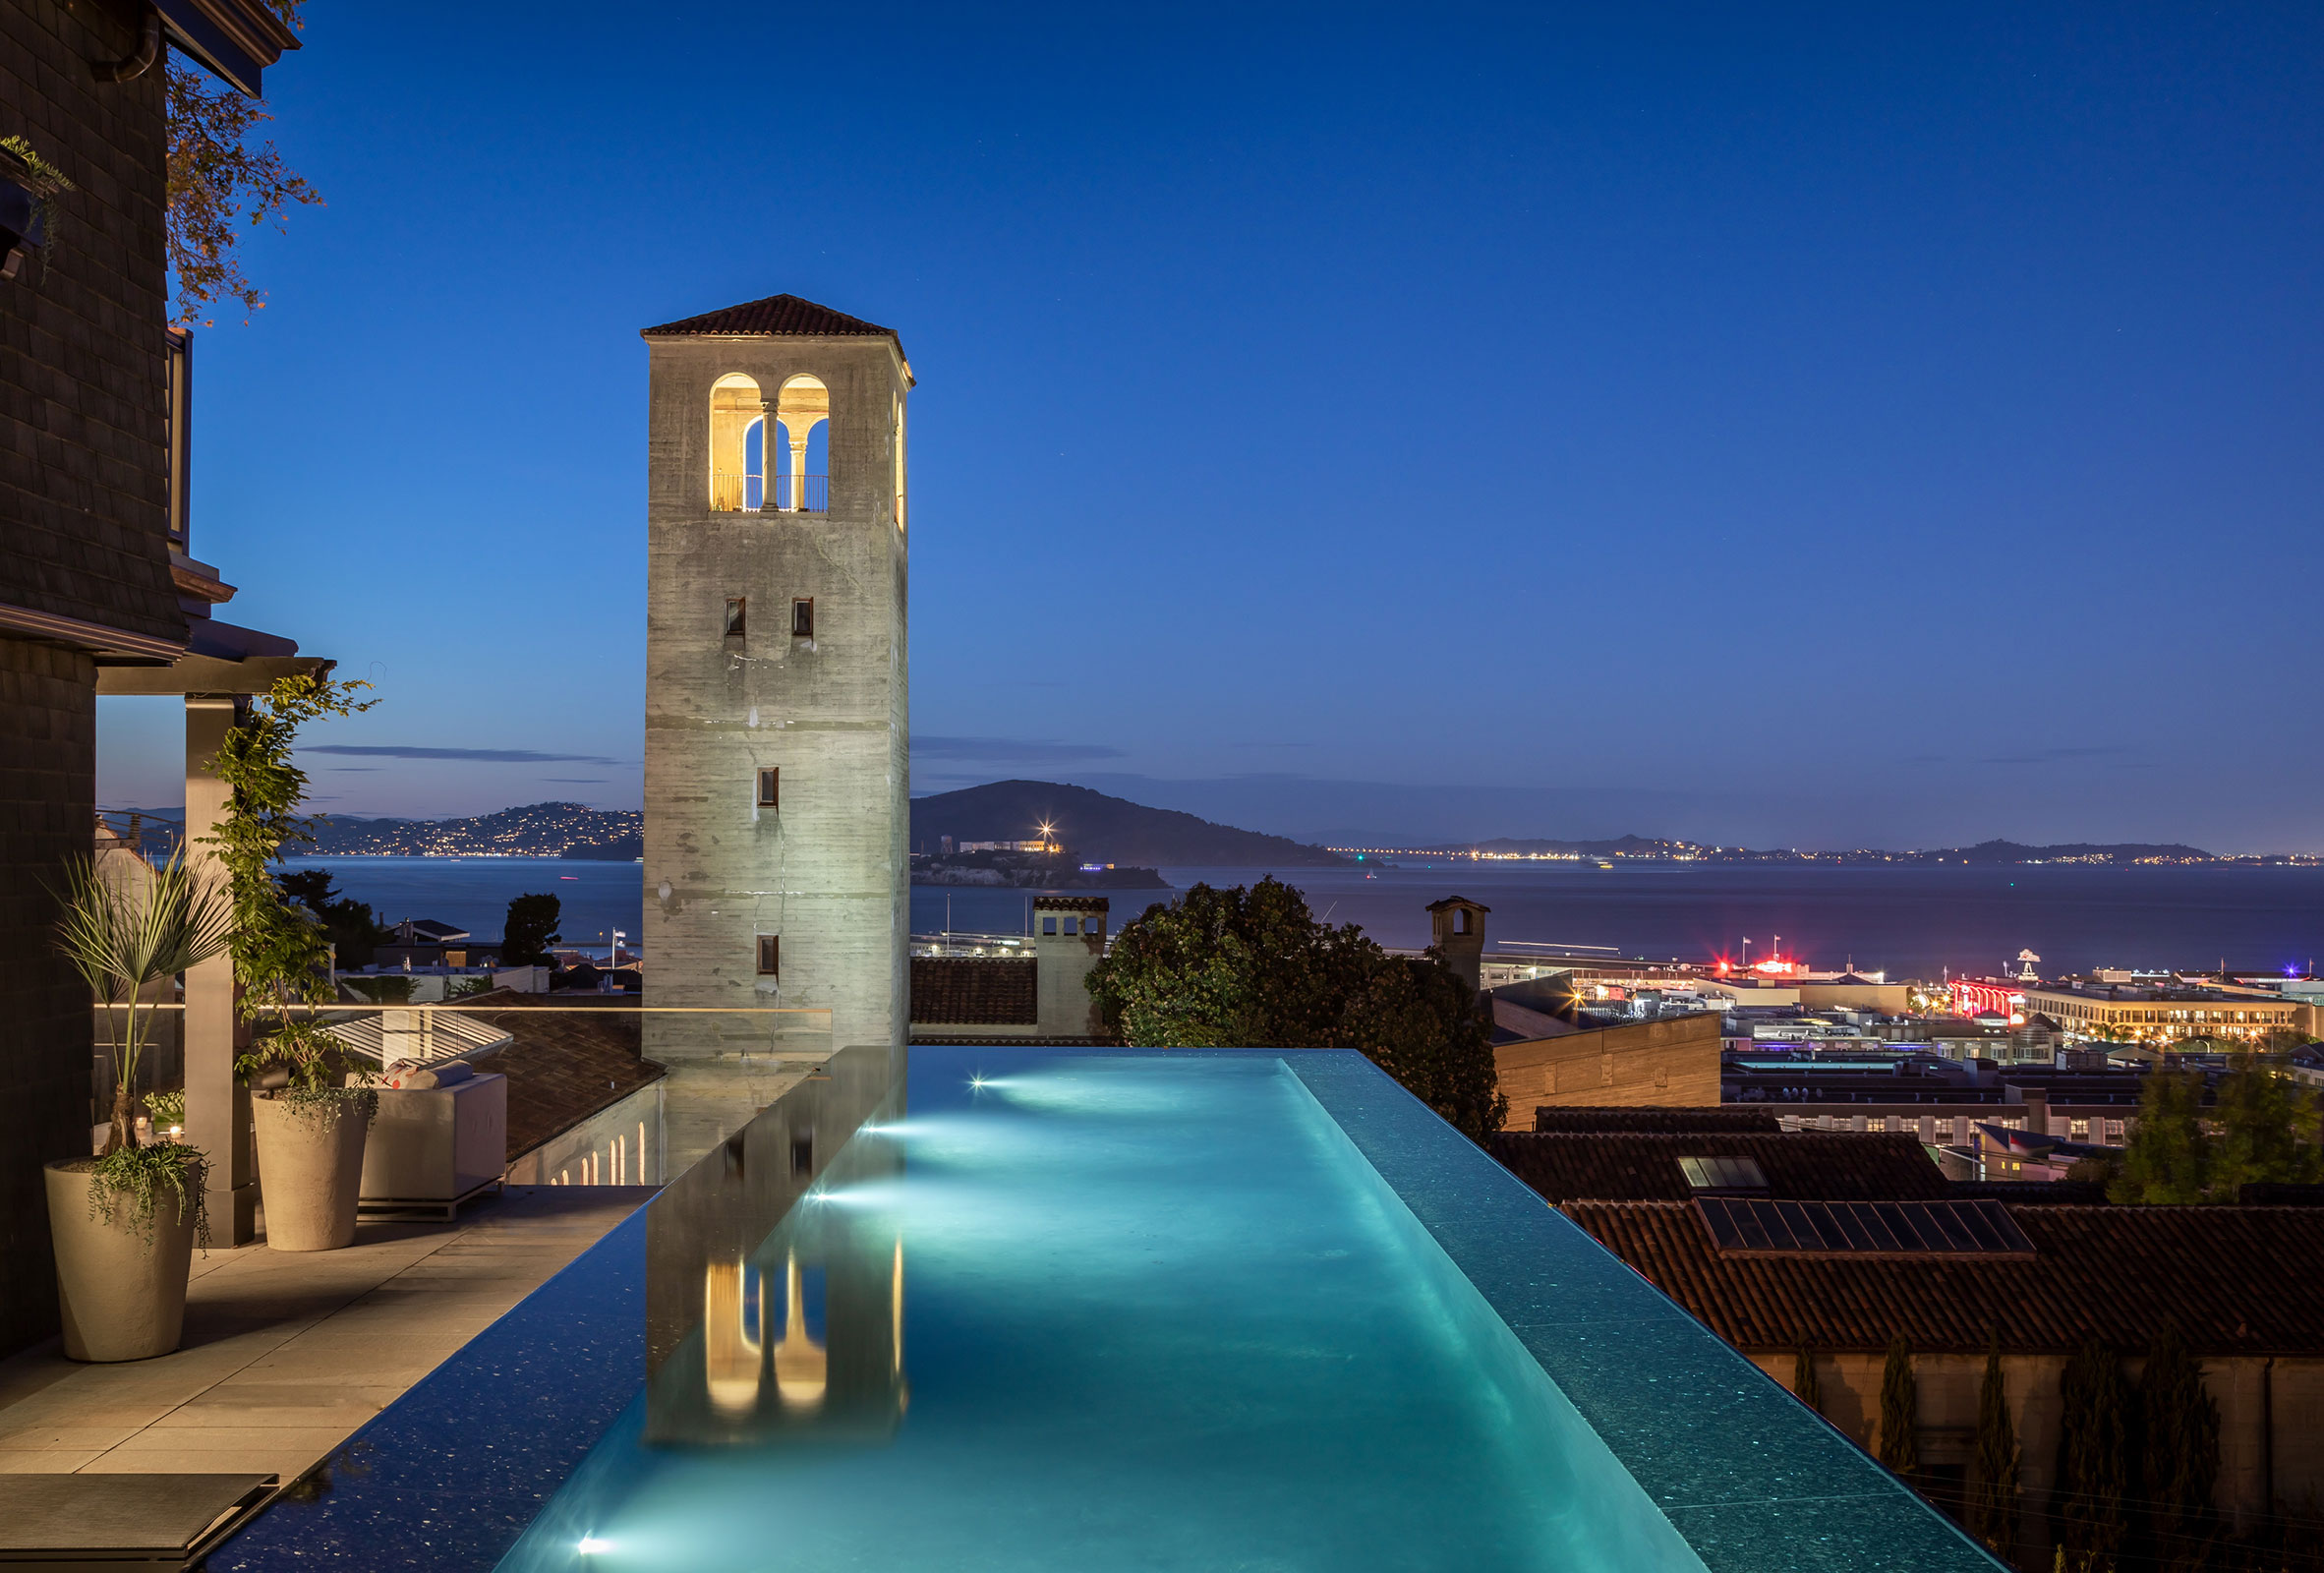 Cantilevered Pool of Residence 950 at Night with Bay Views